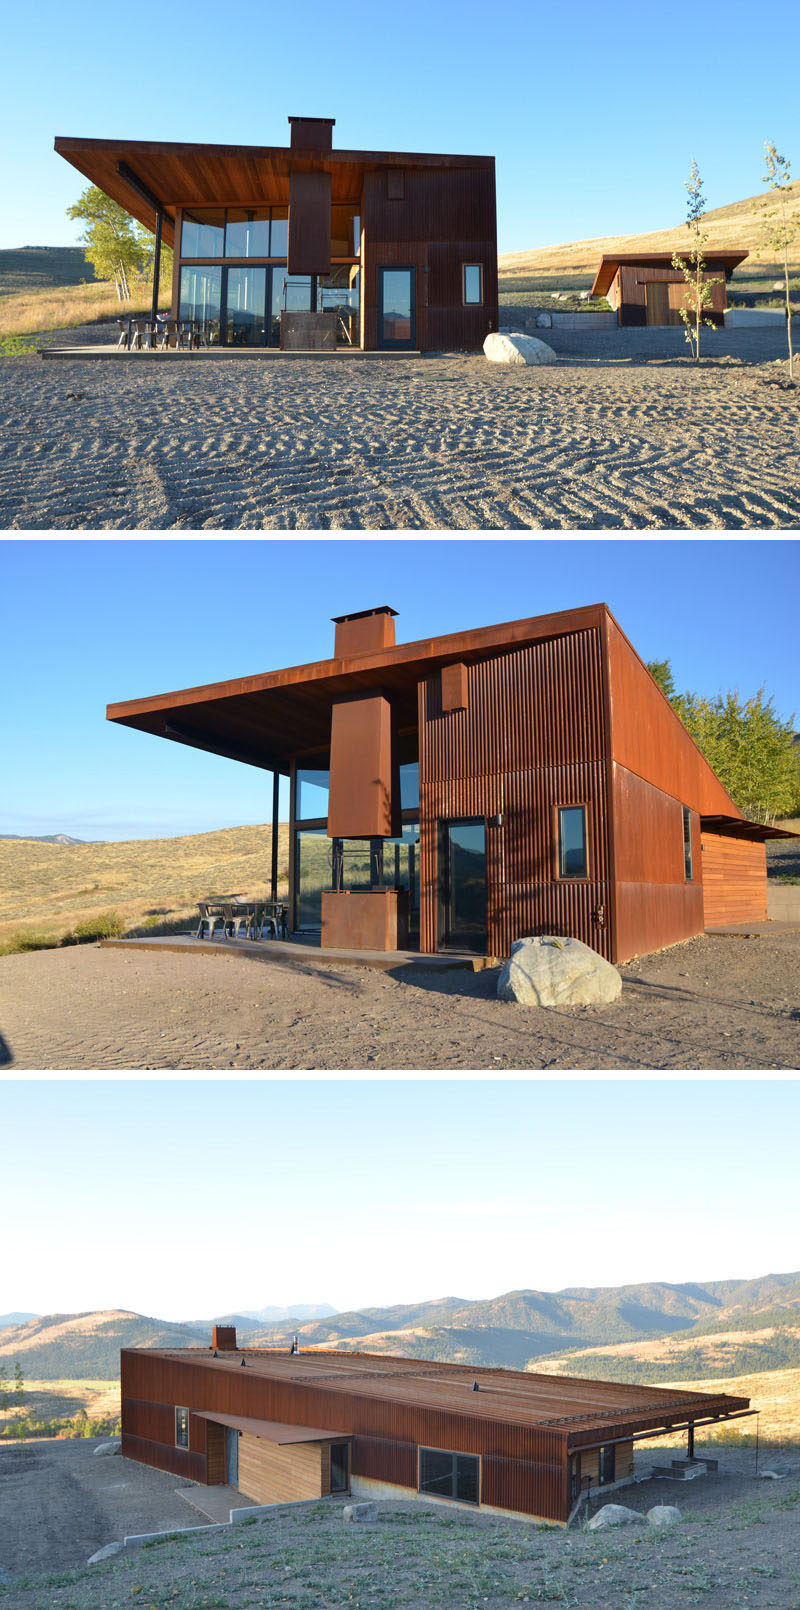 13 Modern Houses That Have Weathering Steel Exteriors ...